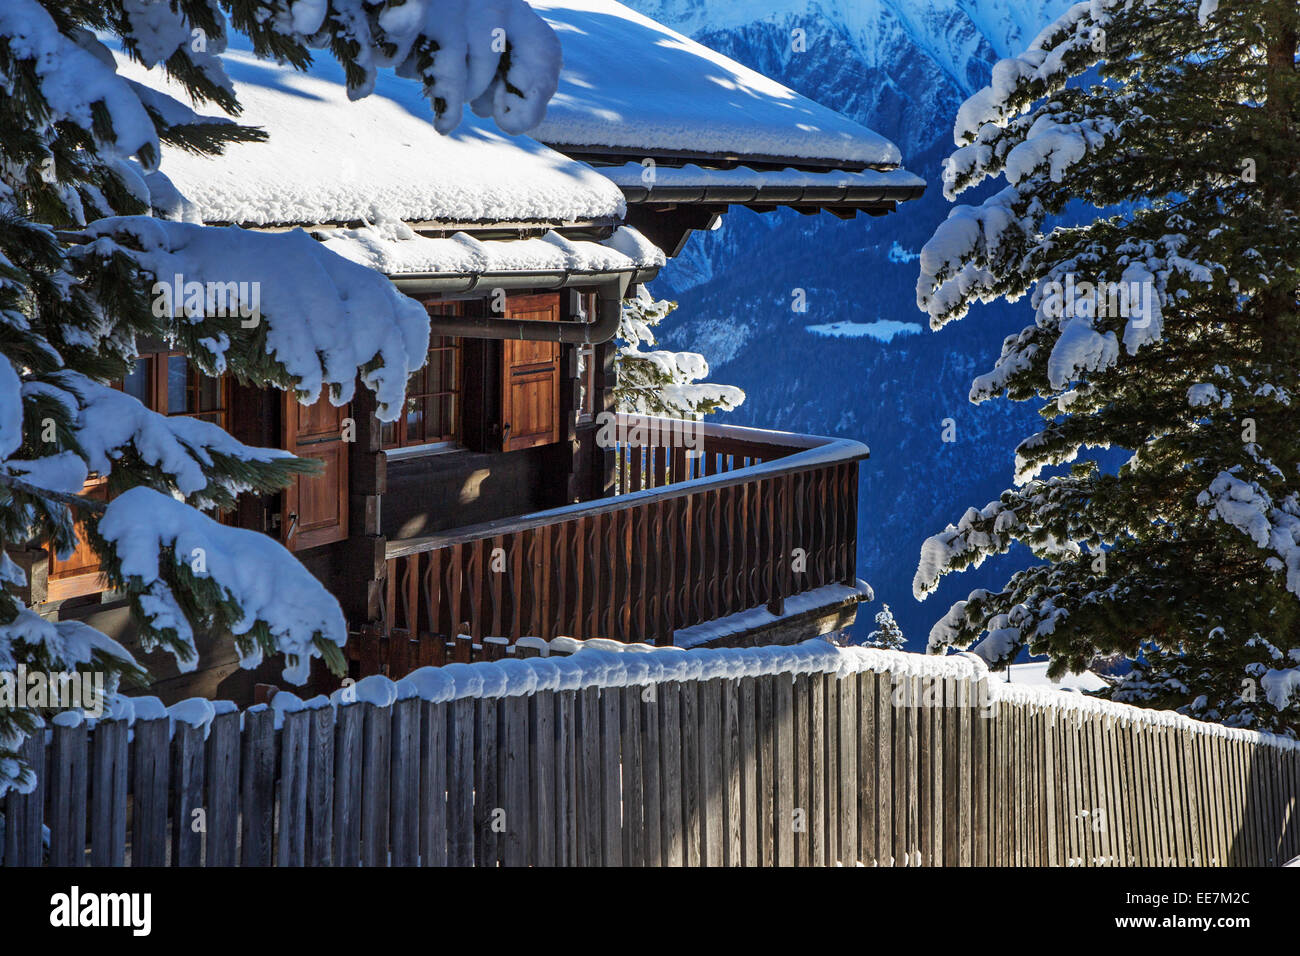 Snow covered Swiss wooden chalet in winter in the Alps, Wallis / Valais, Switzerland - Stock Image